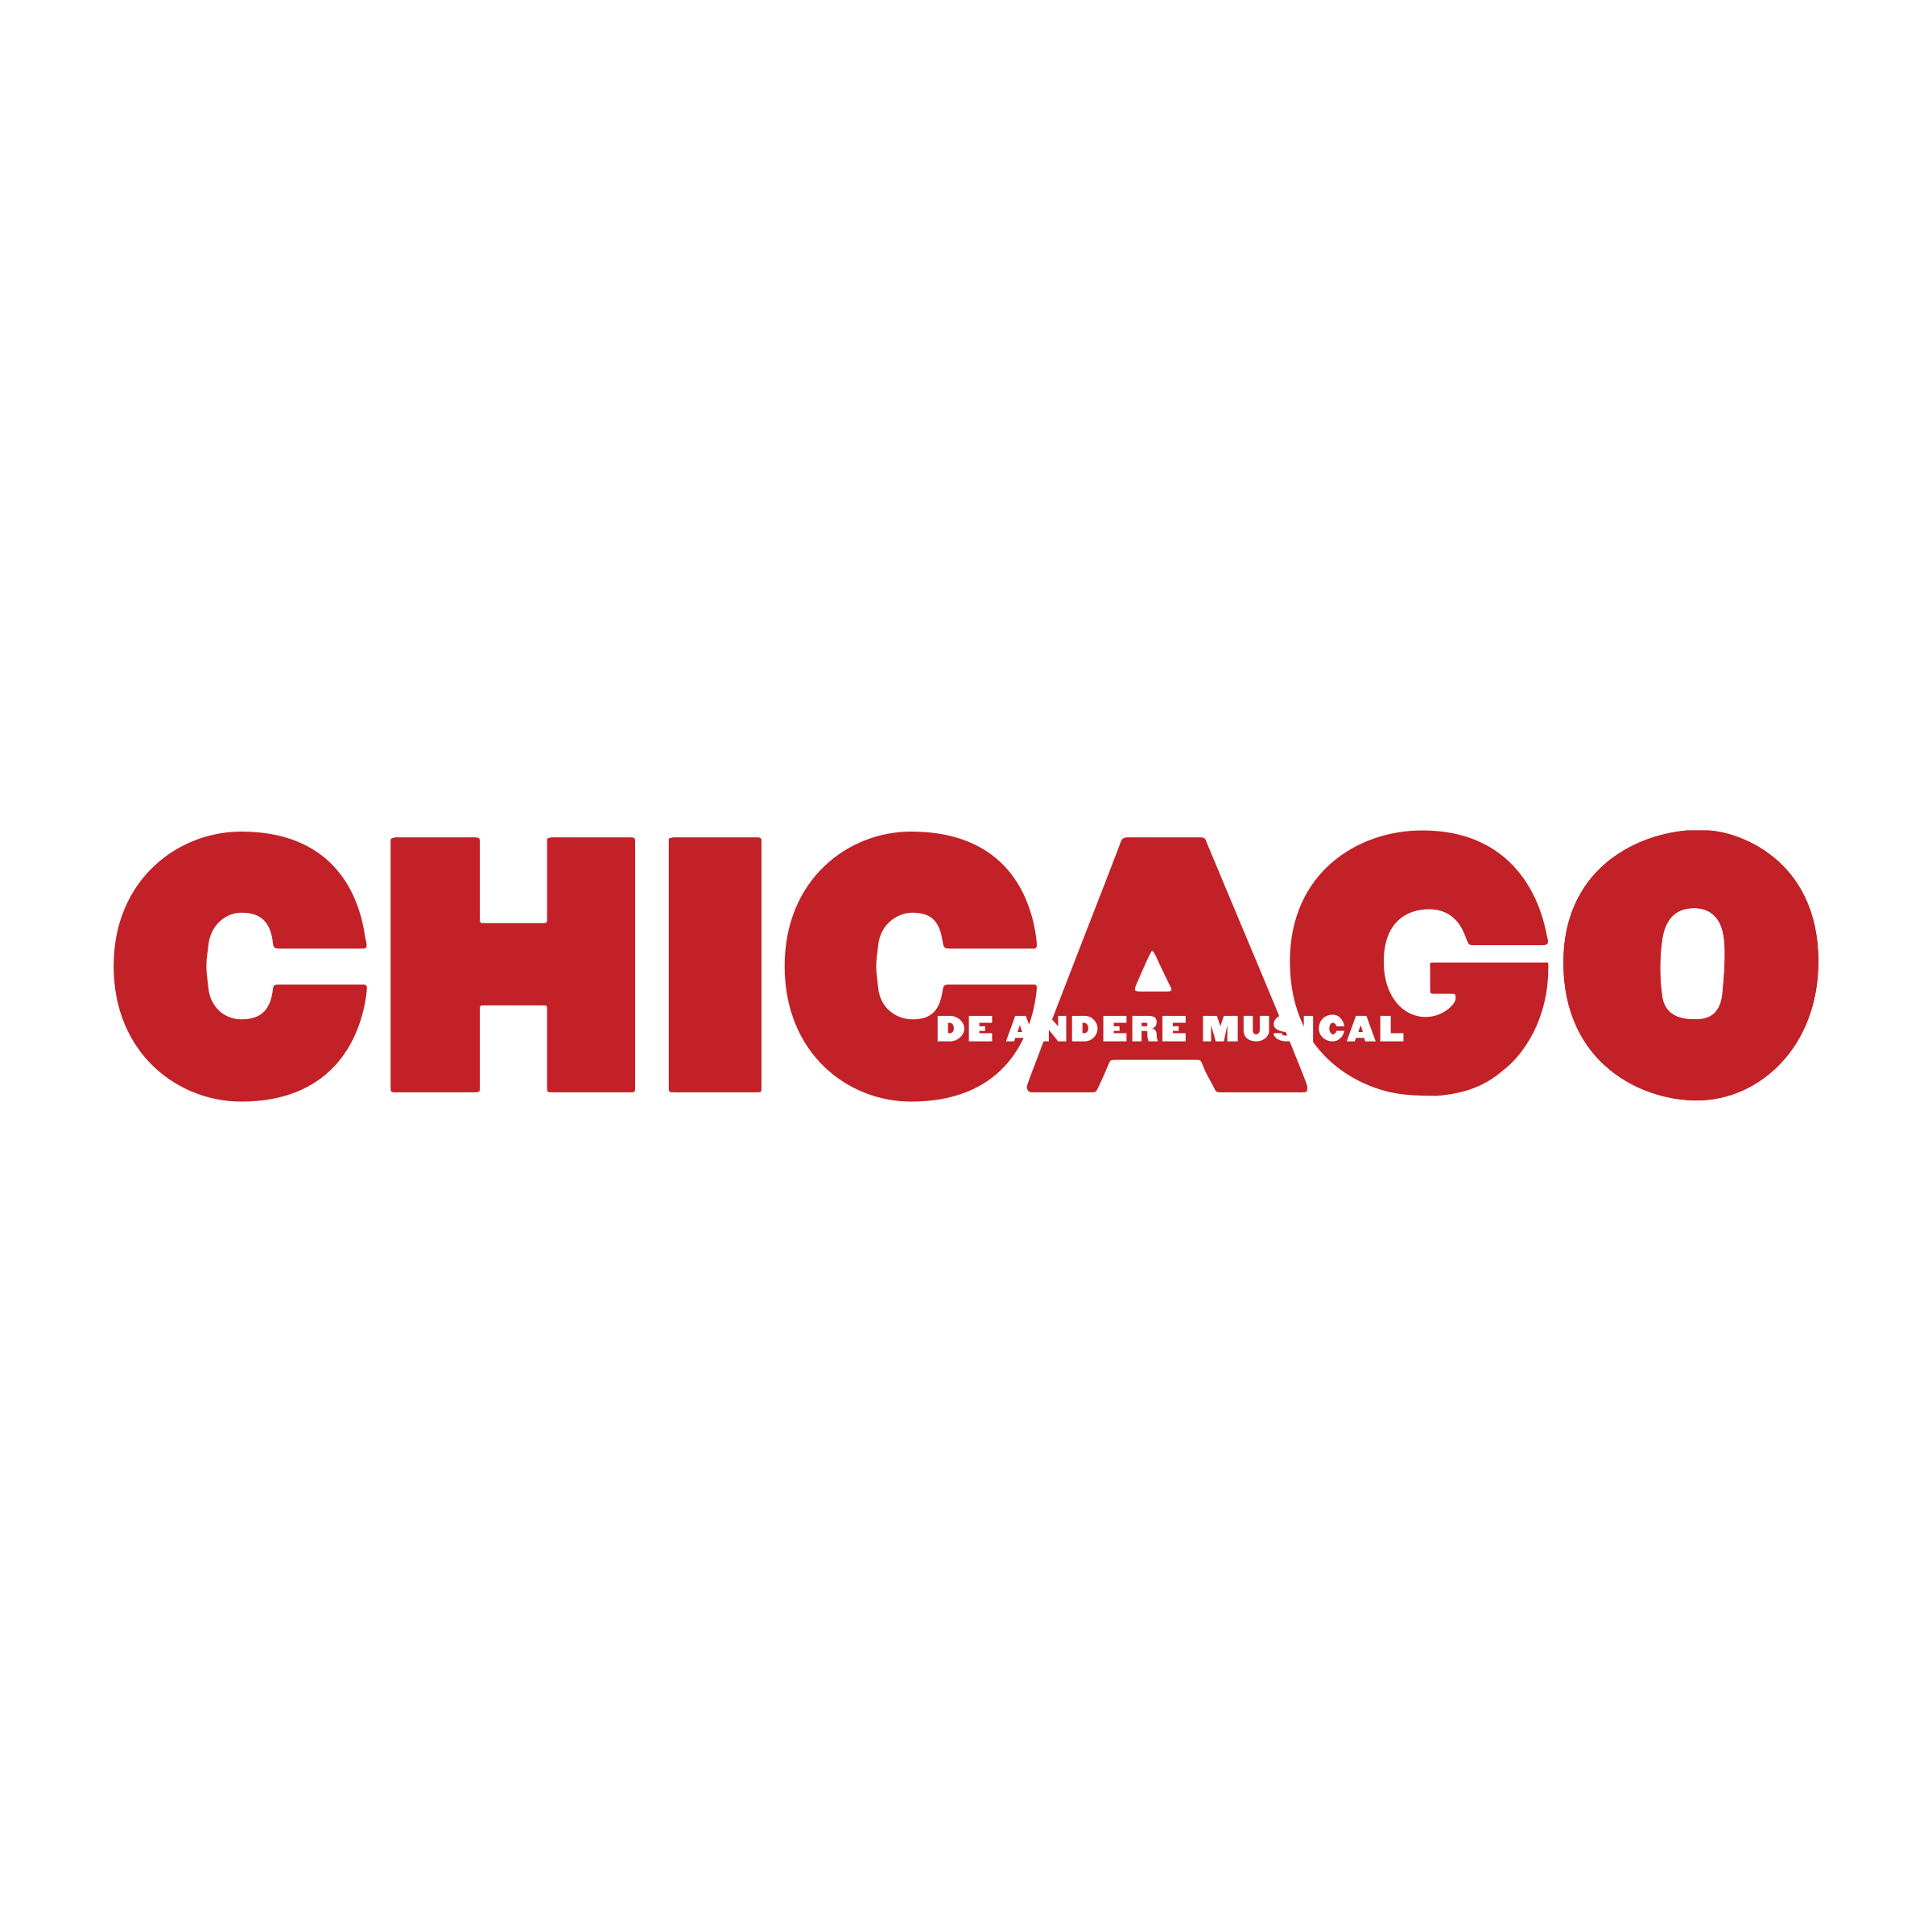 Chicago The Musical Logo Png Transparent Musical Logo Chicago Musical Chicago